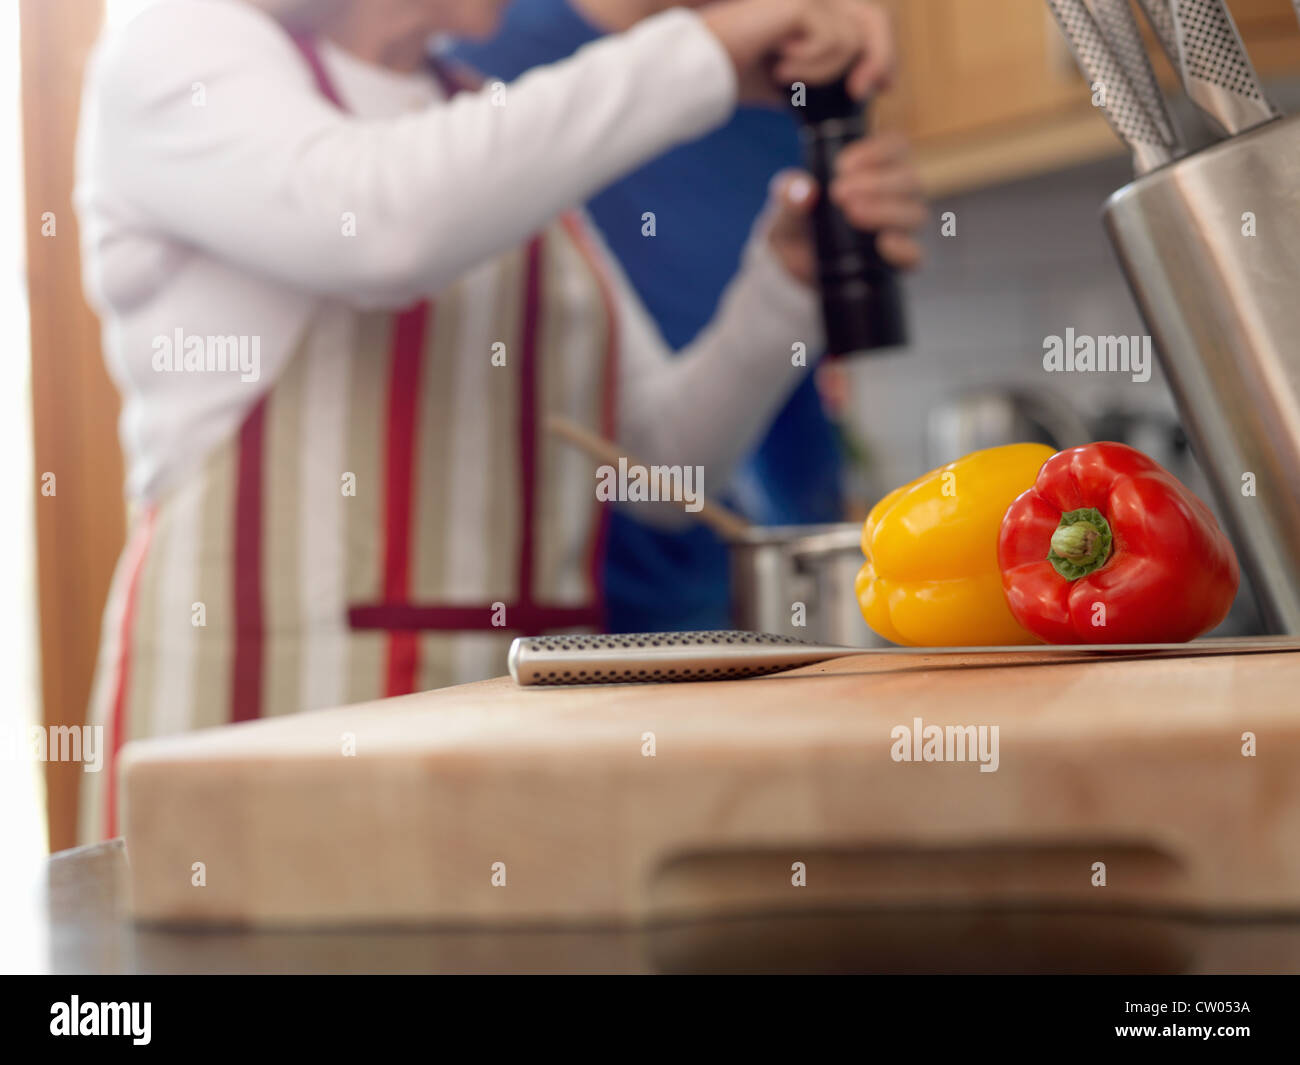 Close up of peppers on cutting board - Stock Image